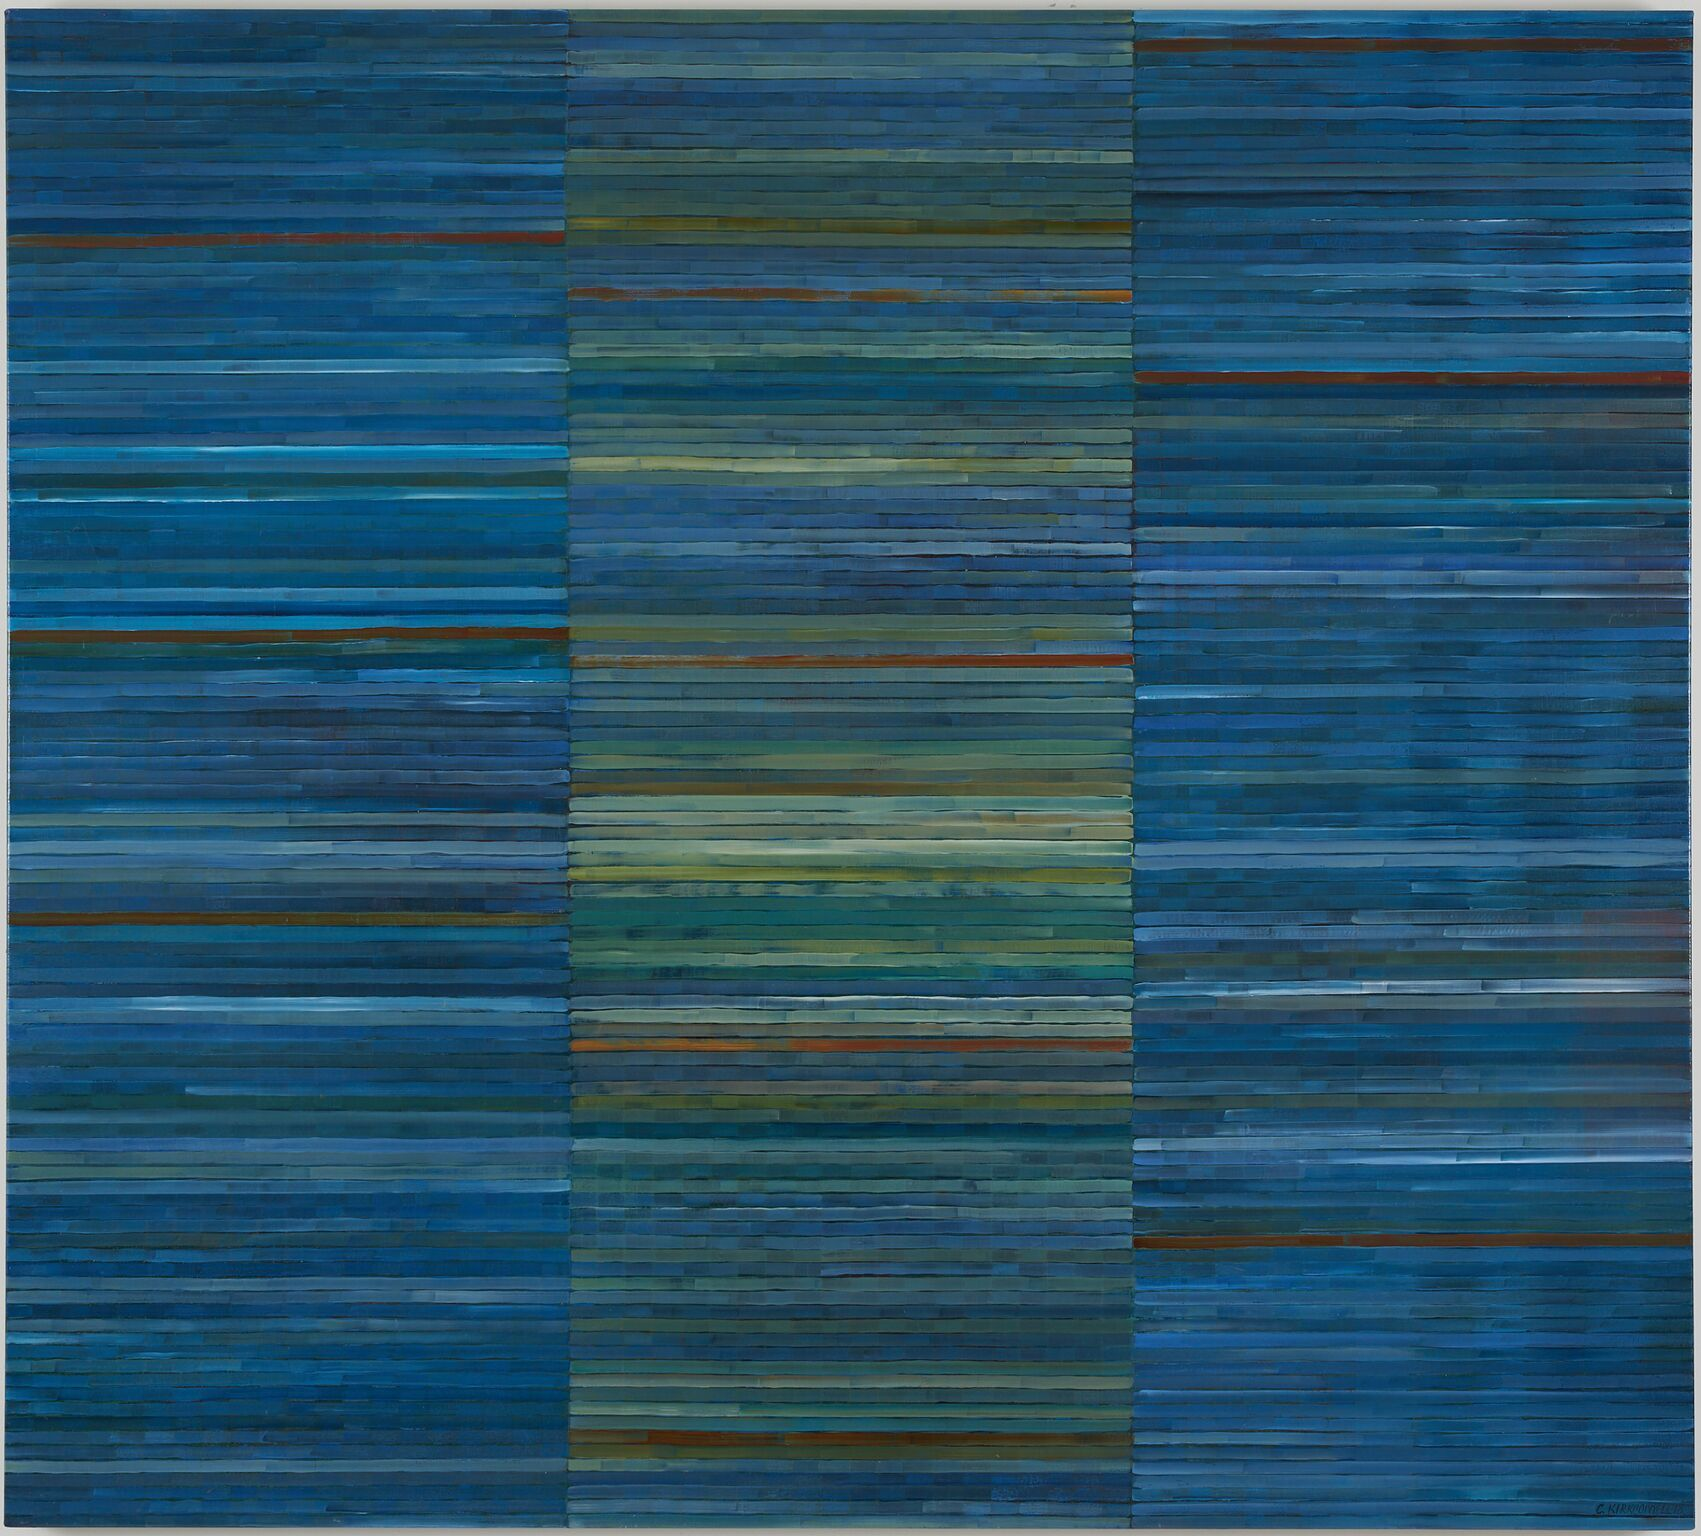 Clare Kirkconnell Strip Bars I (Indigo Version), 2018